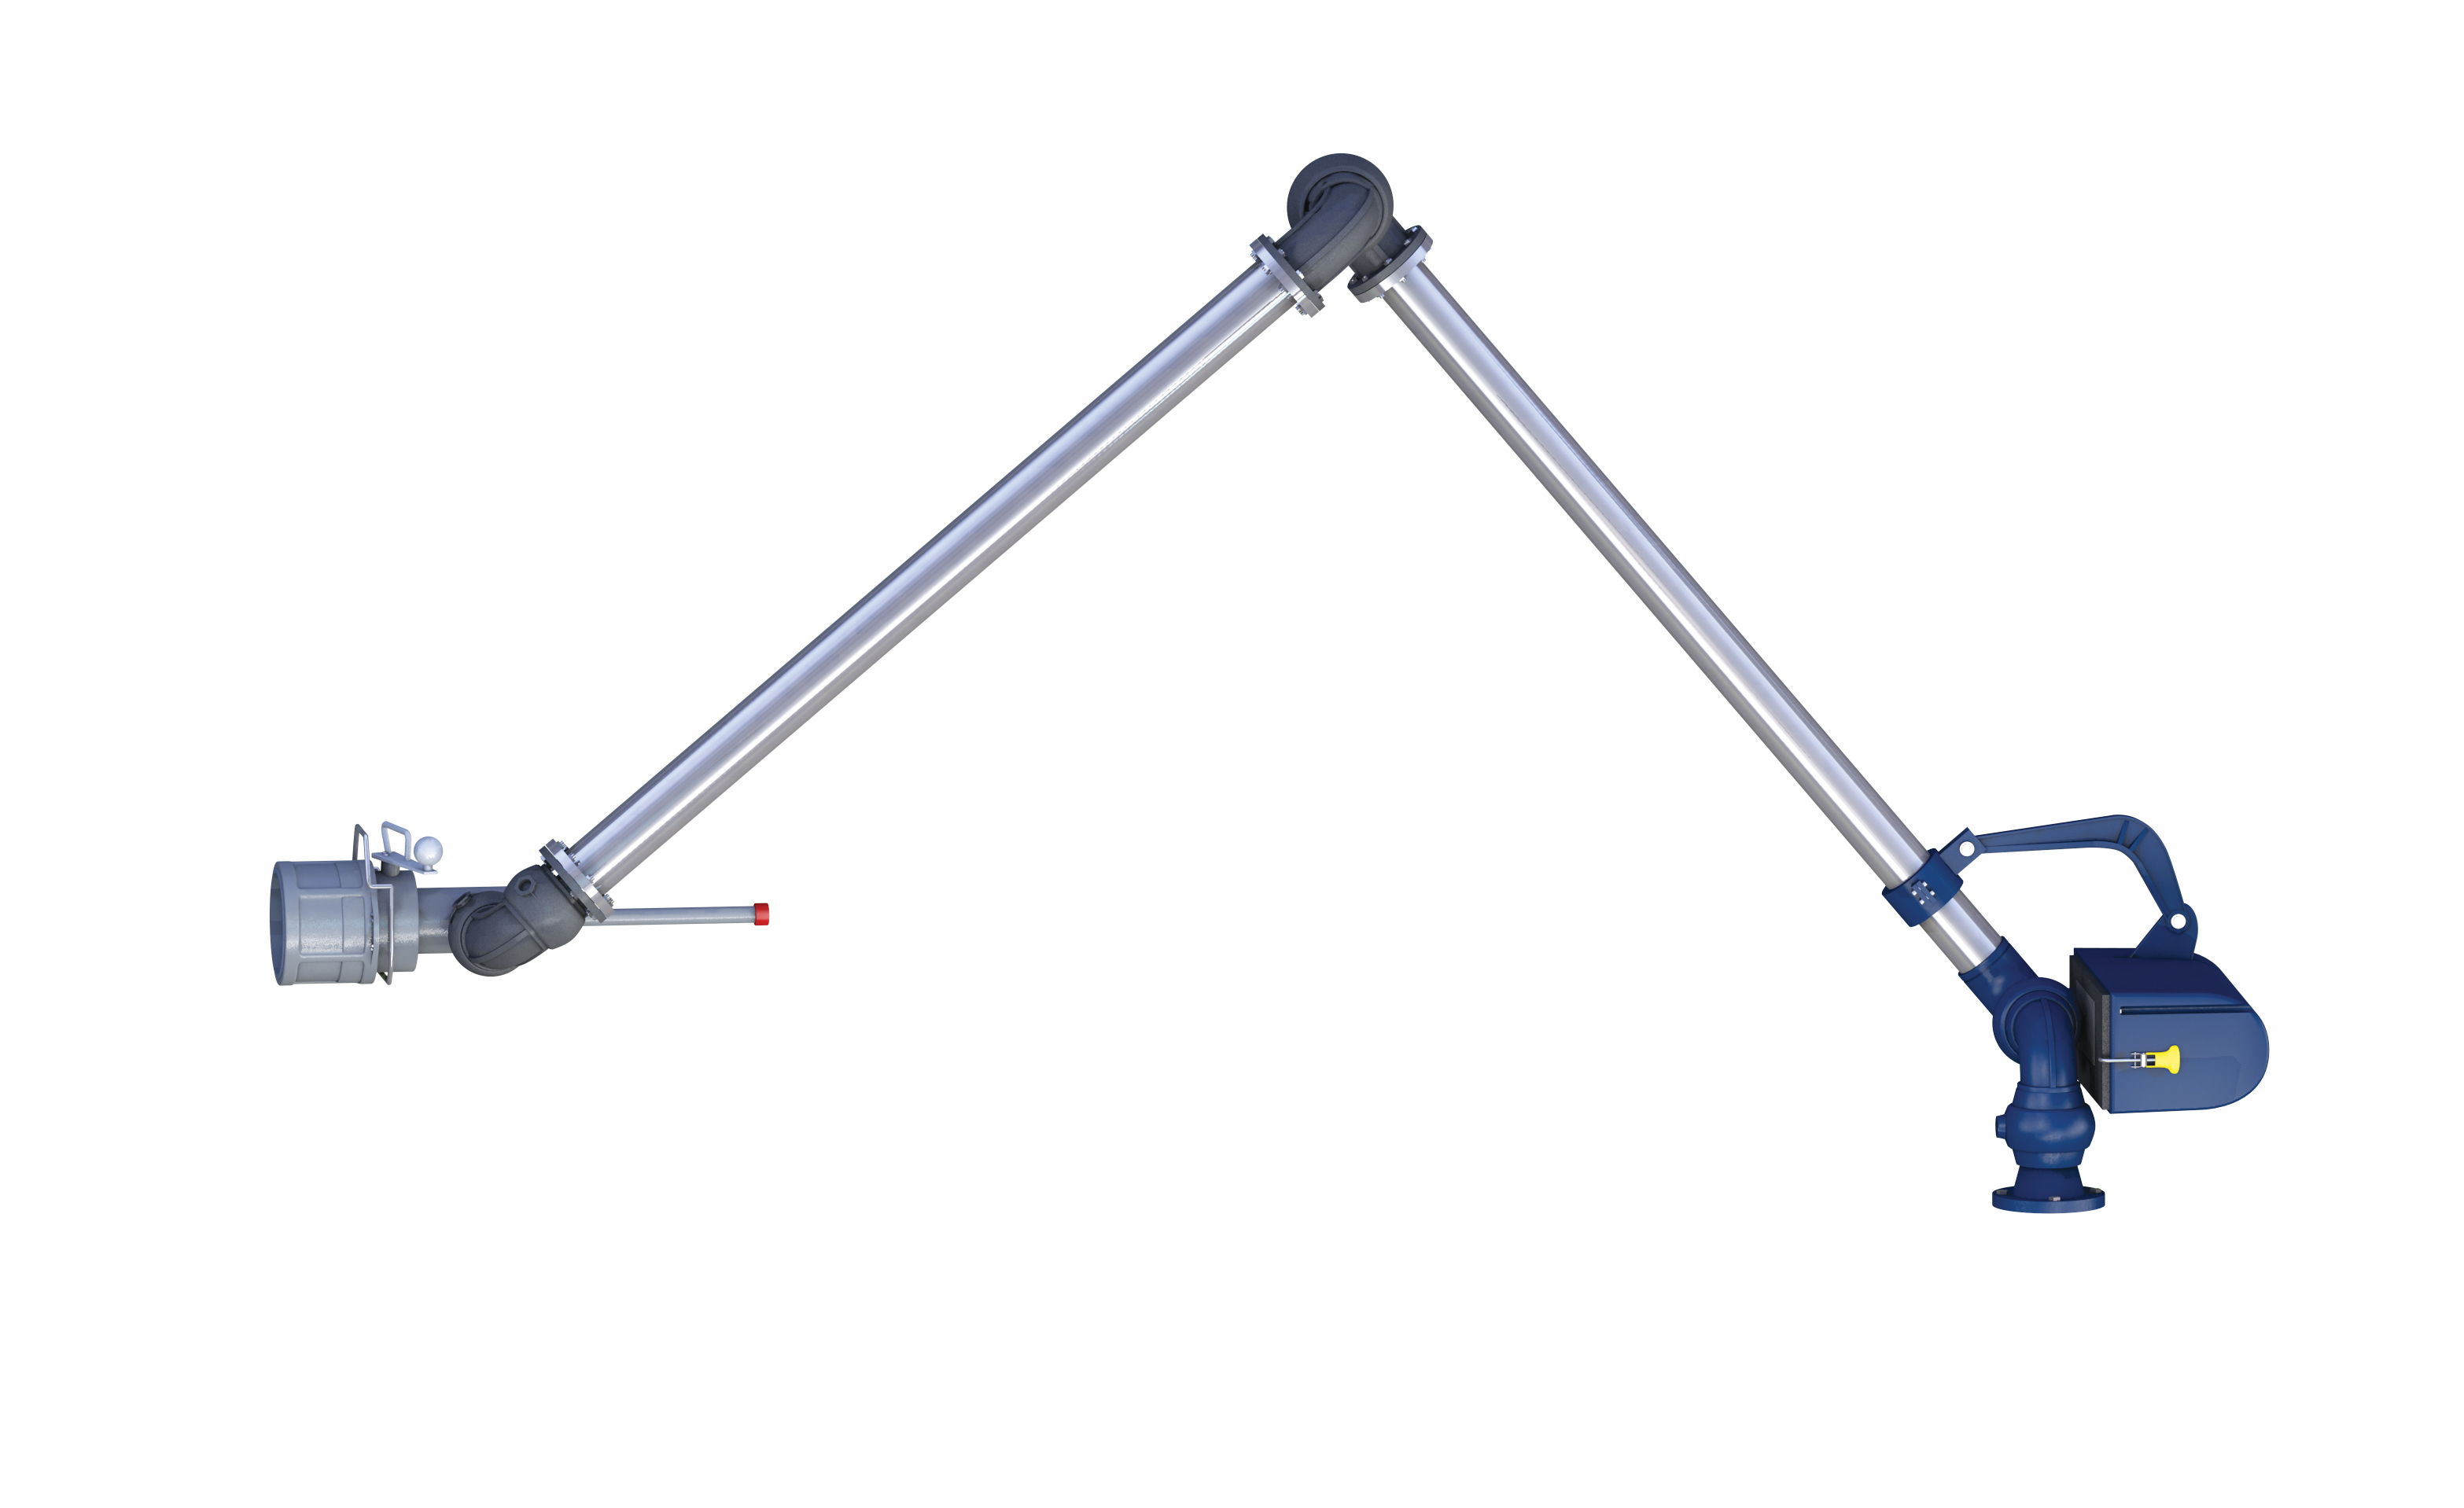 Hydraulic Loading Arms : Bottom load ontario hose specialties limited